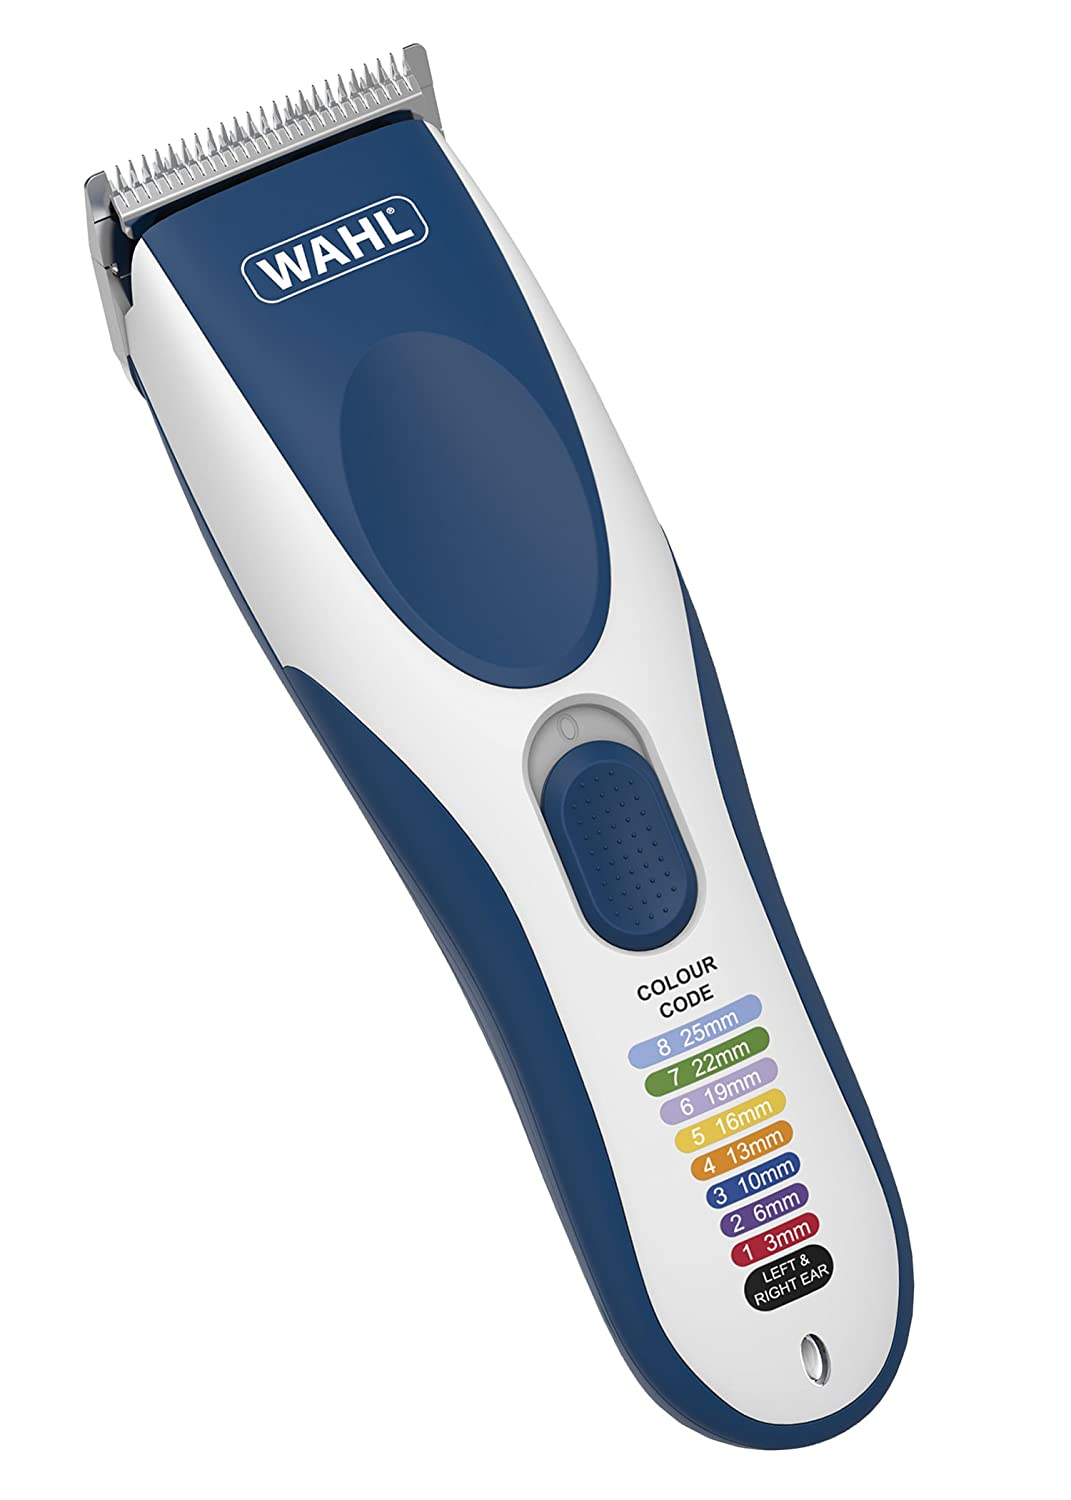 Wahl Colour Pro Cordless Clipper Kit with Rechargeable Groomsman Trimmer